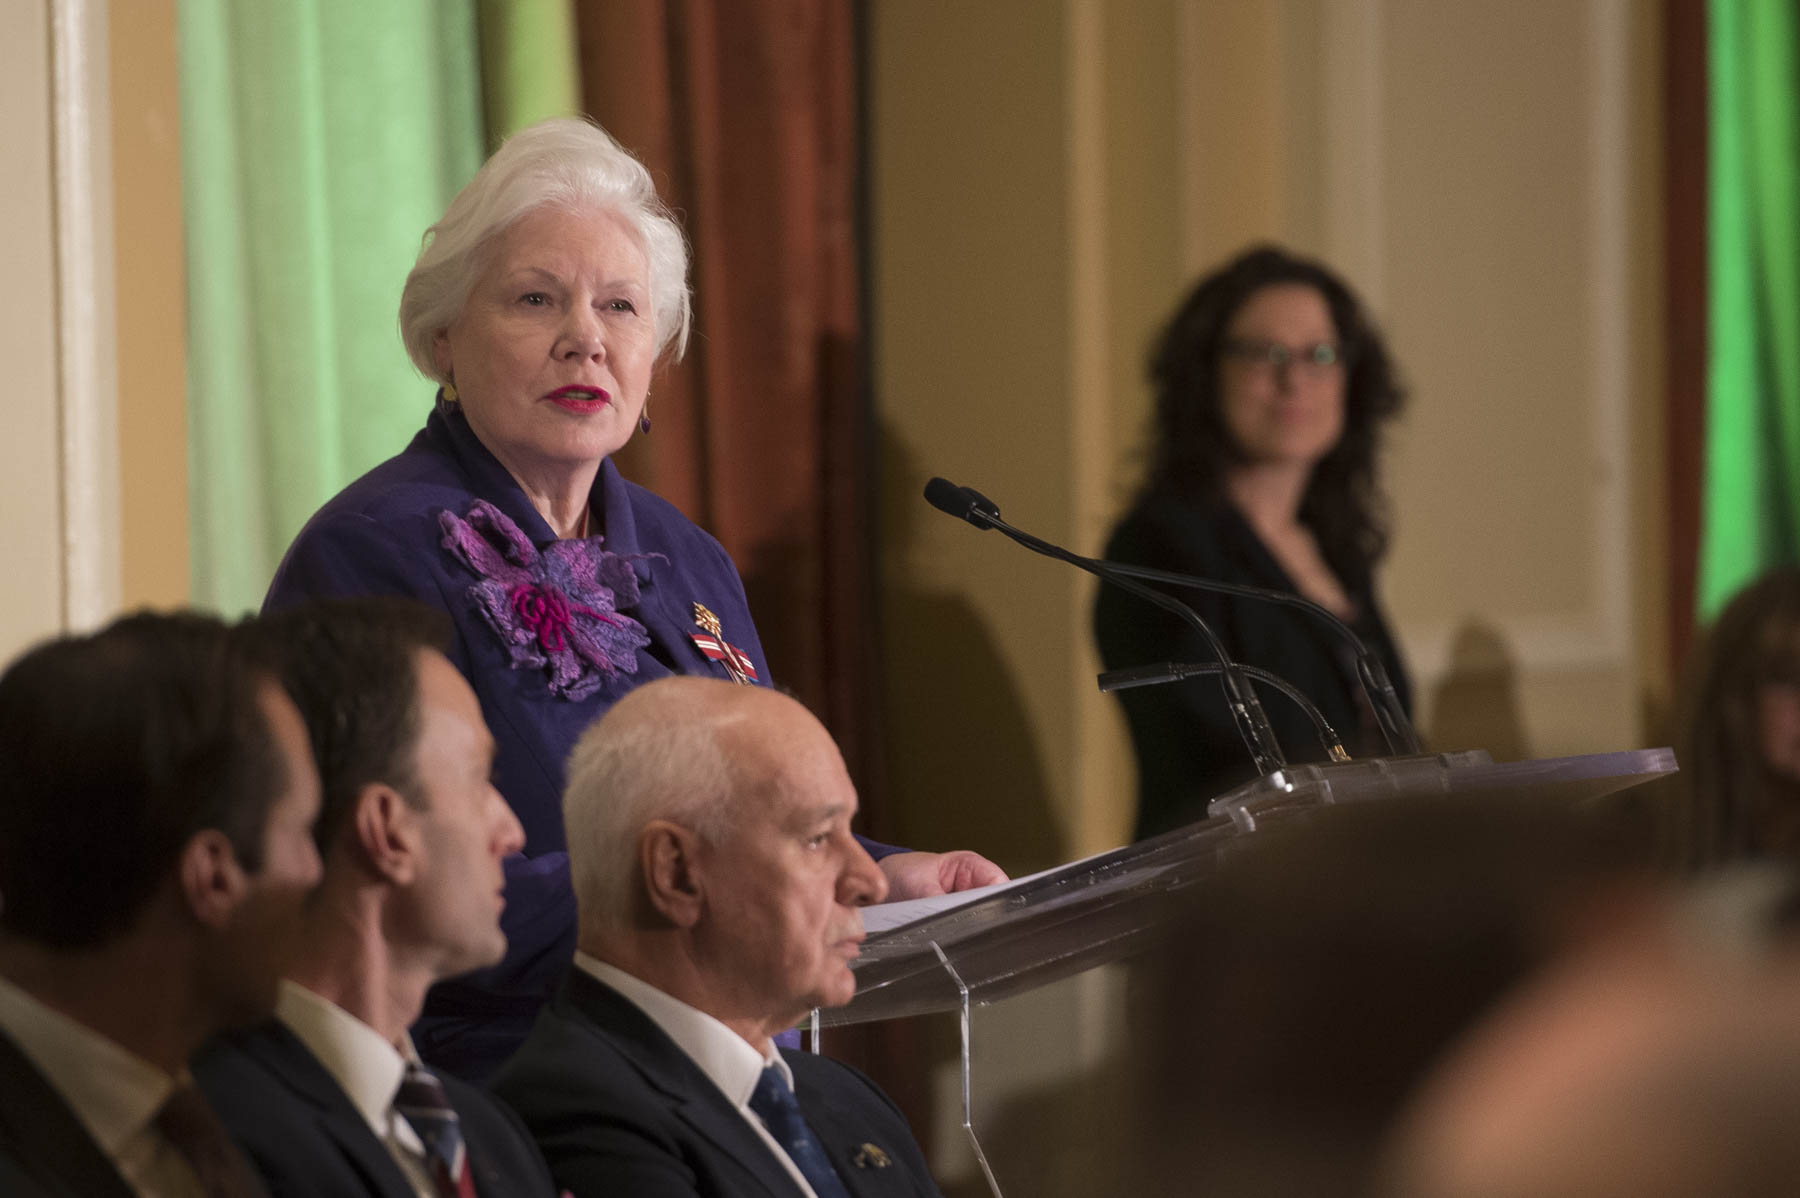 Her Honour the Honourable Elizabeth Dowdeswell, Lieutenant Governor of Ontario, provided opening remarks.